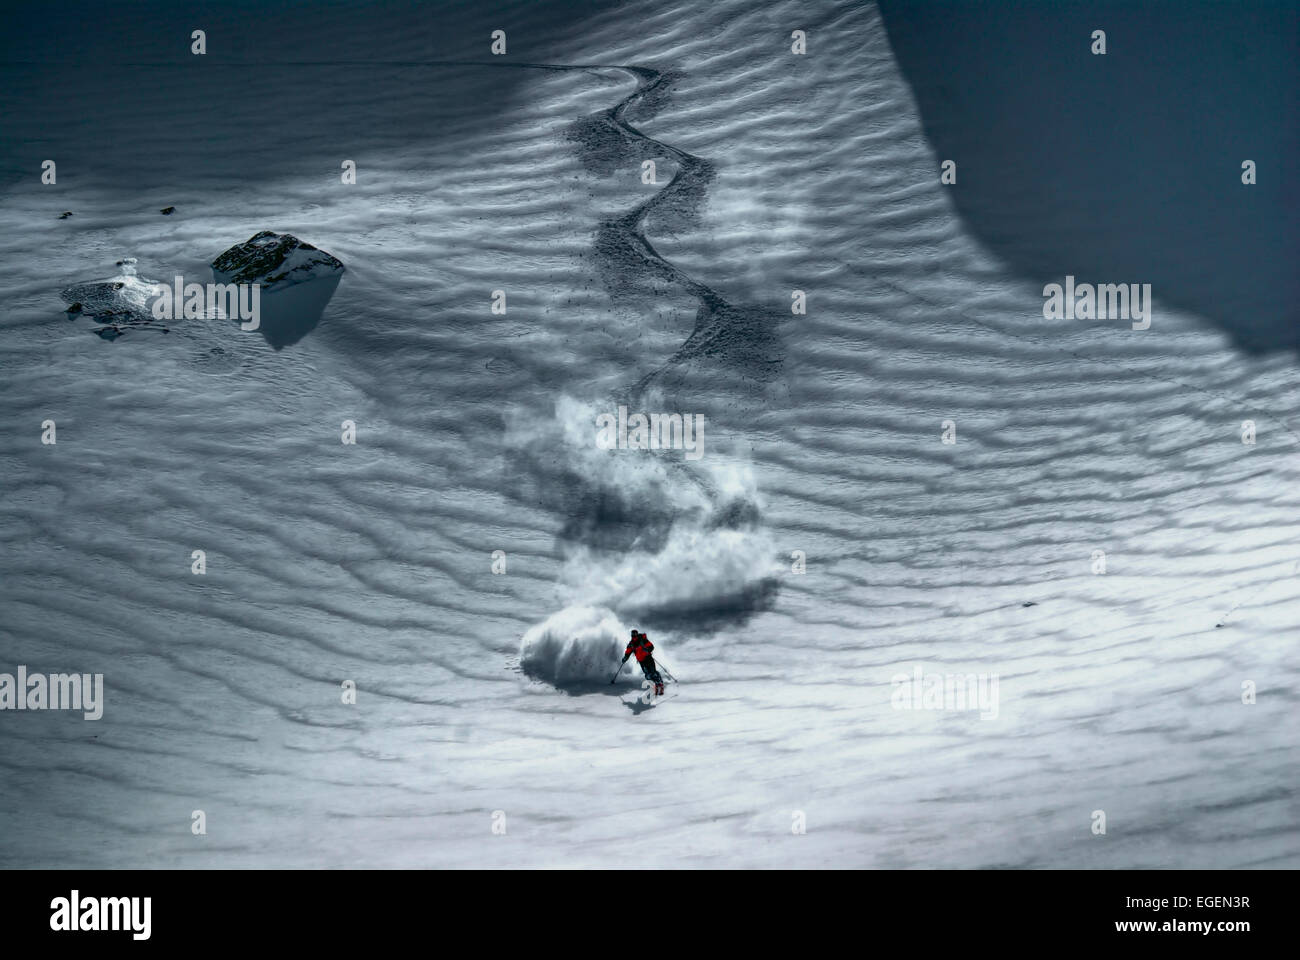 Amazing view of a skier riding down the piste - Stock Image